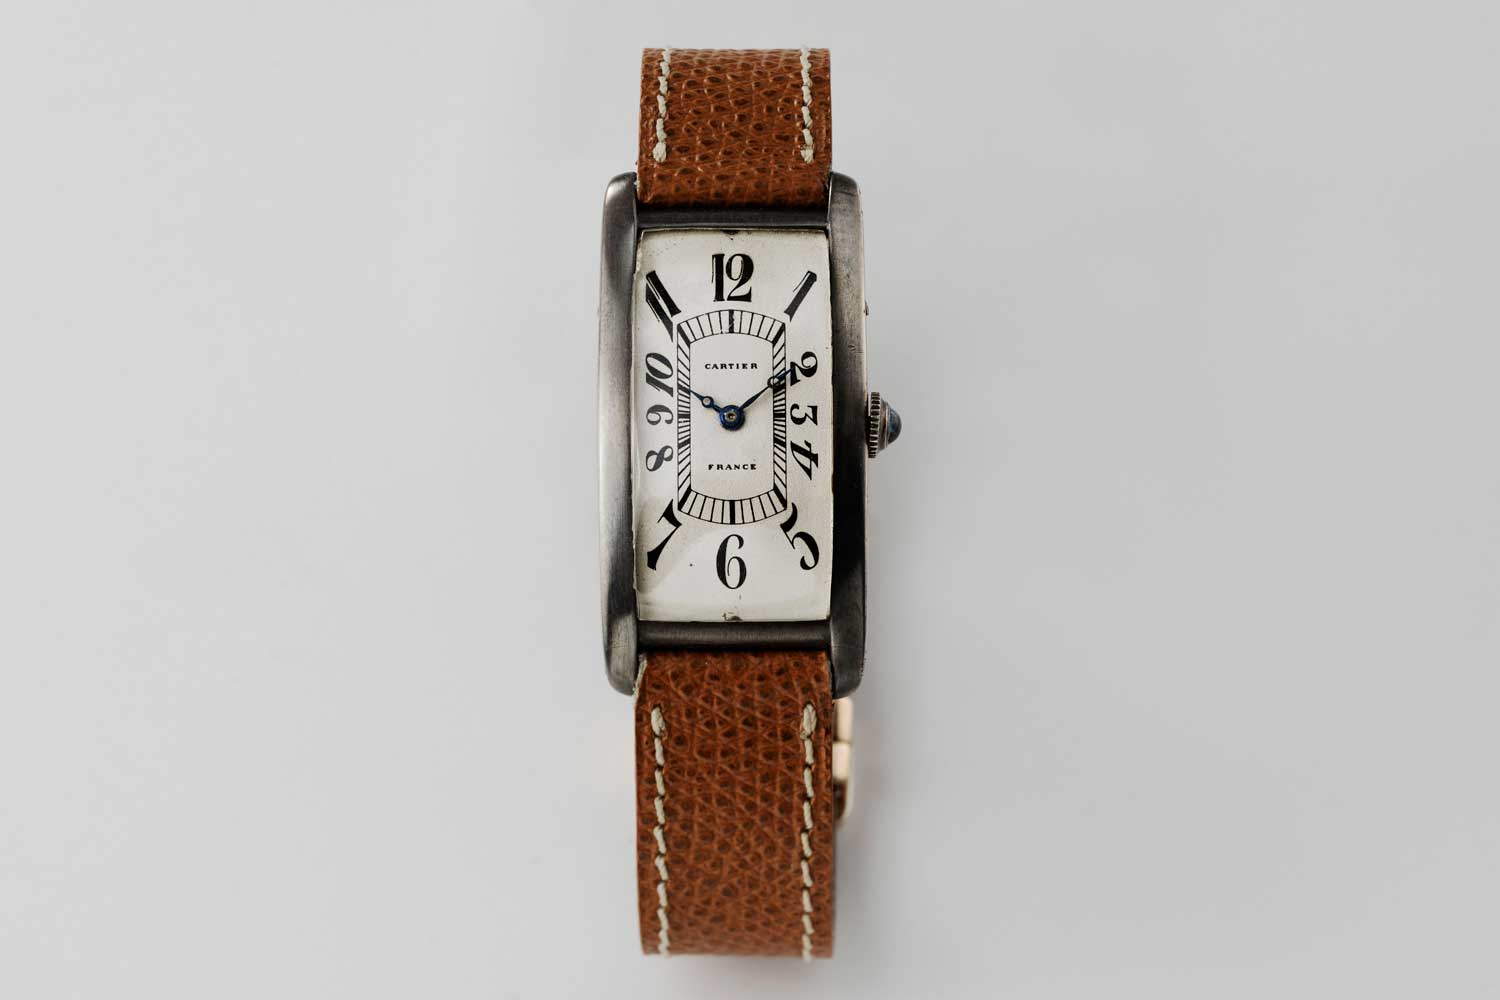 1926 made in France Cartier Tank Cintrée, possibly pièce unique with a silver case and elongated Arabic numerals; powered by a European Watch movement; this particular piece is from the private collection of Auro Montanari (©Revolution)